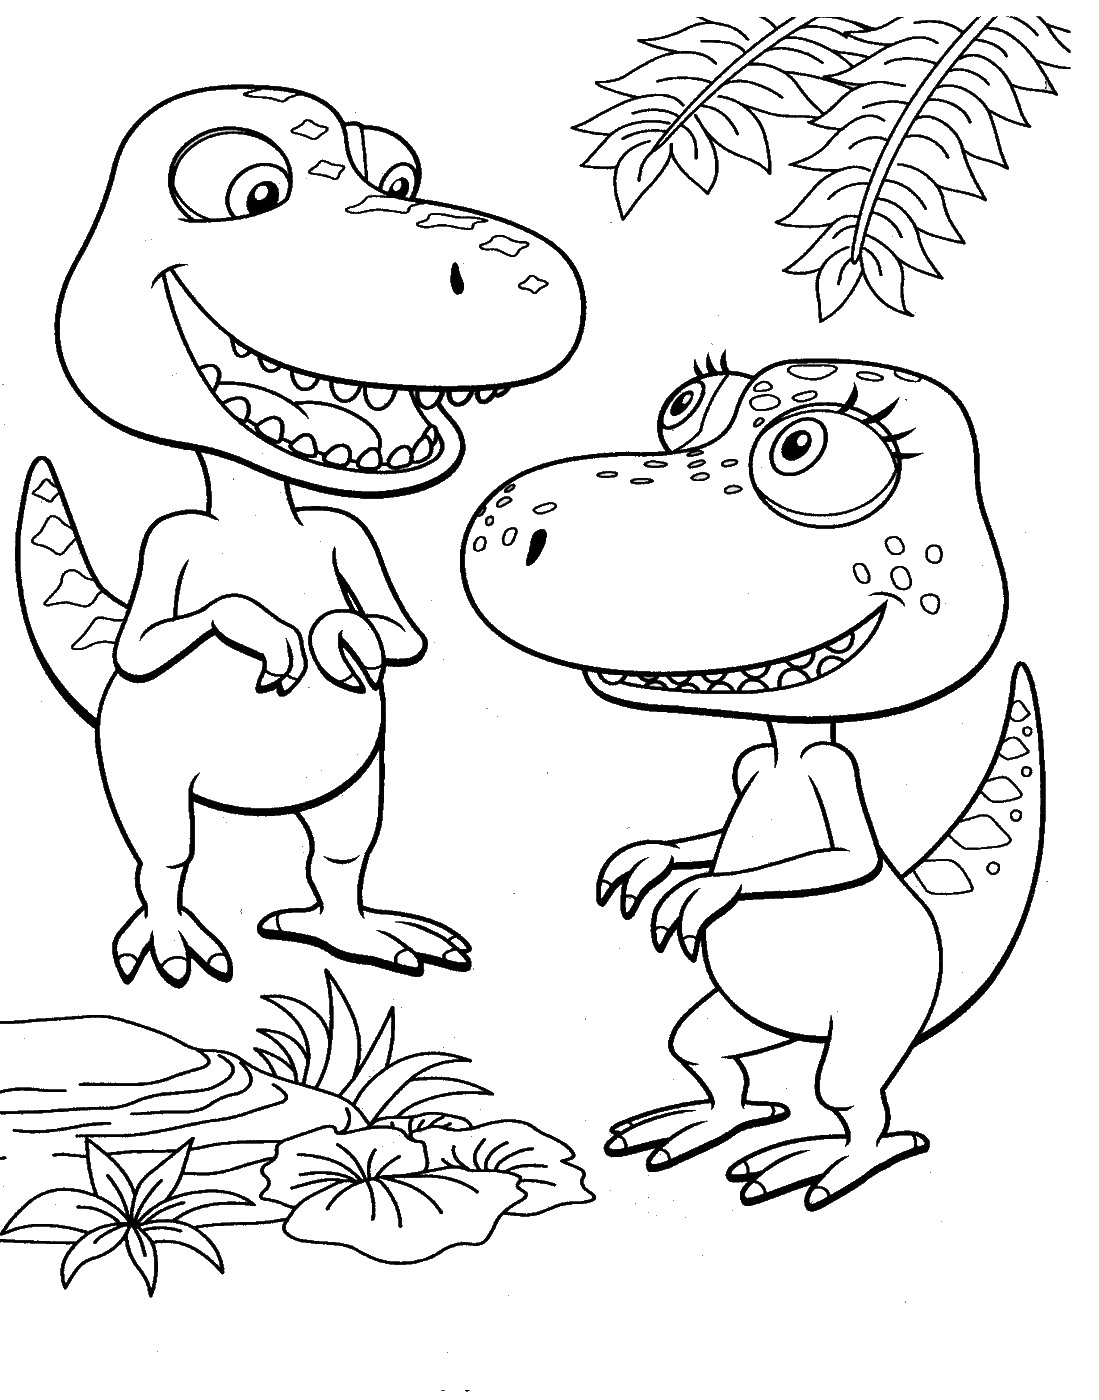 free printable dinosaur coloring pages printable dinosaur coloring pages for kids cool2bkids dinosaur printable coloring free pages